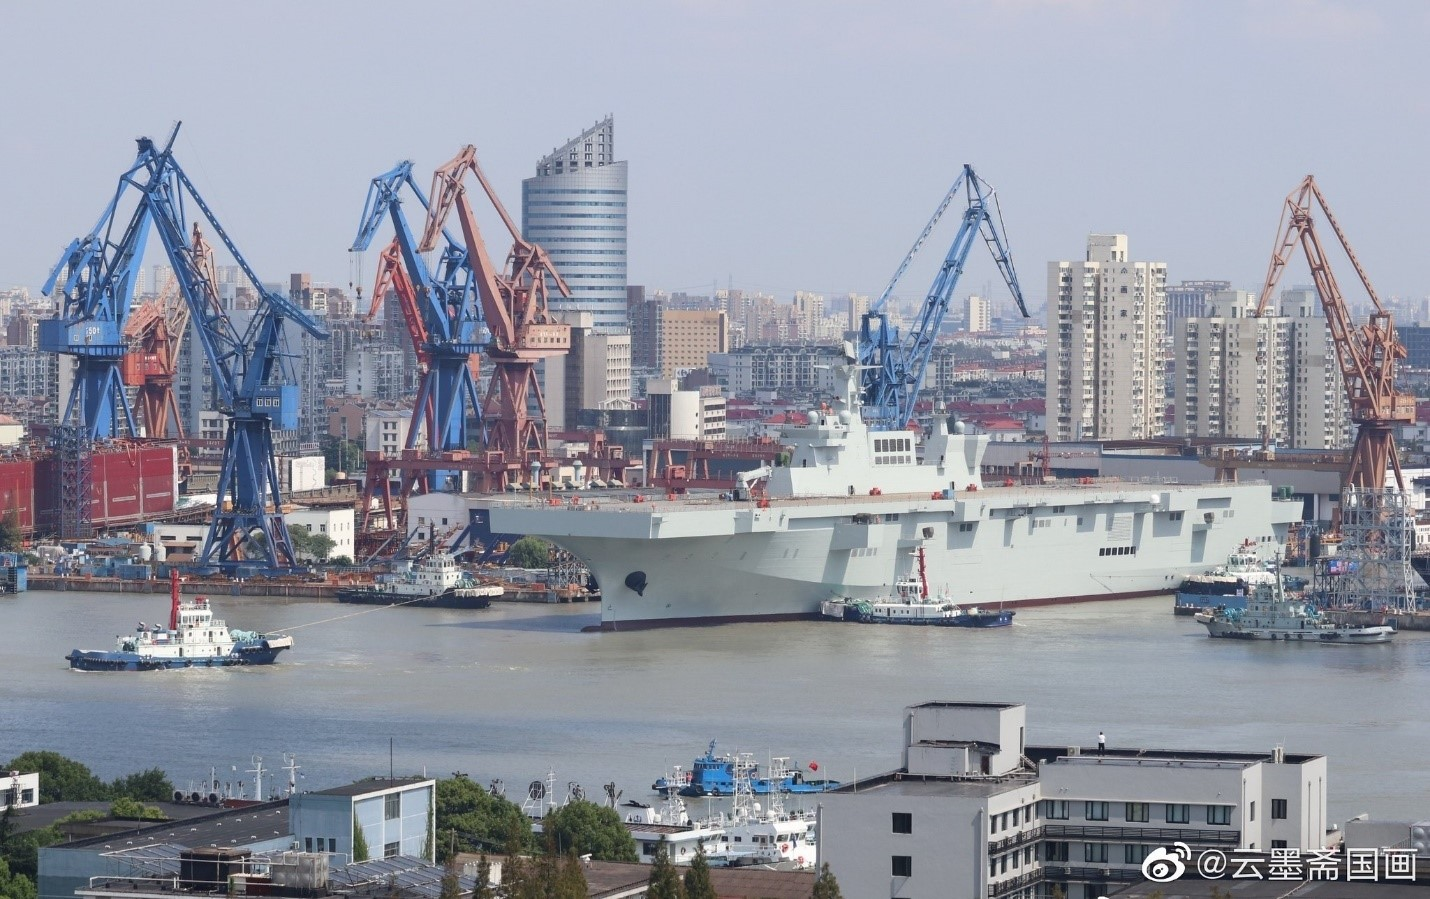 The first Type 075 LHD launched in Shanghai on September 25th, 2019. A second vessel is already under construction, while the third is rumored to be somewhat larger in dimensions and displacement. Initially conceived sometime in 2012, the project came to fruition in just 7 years.